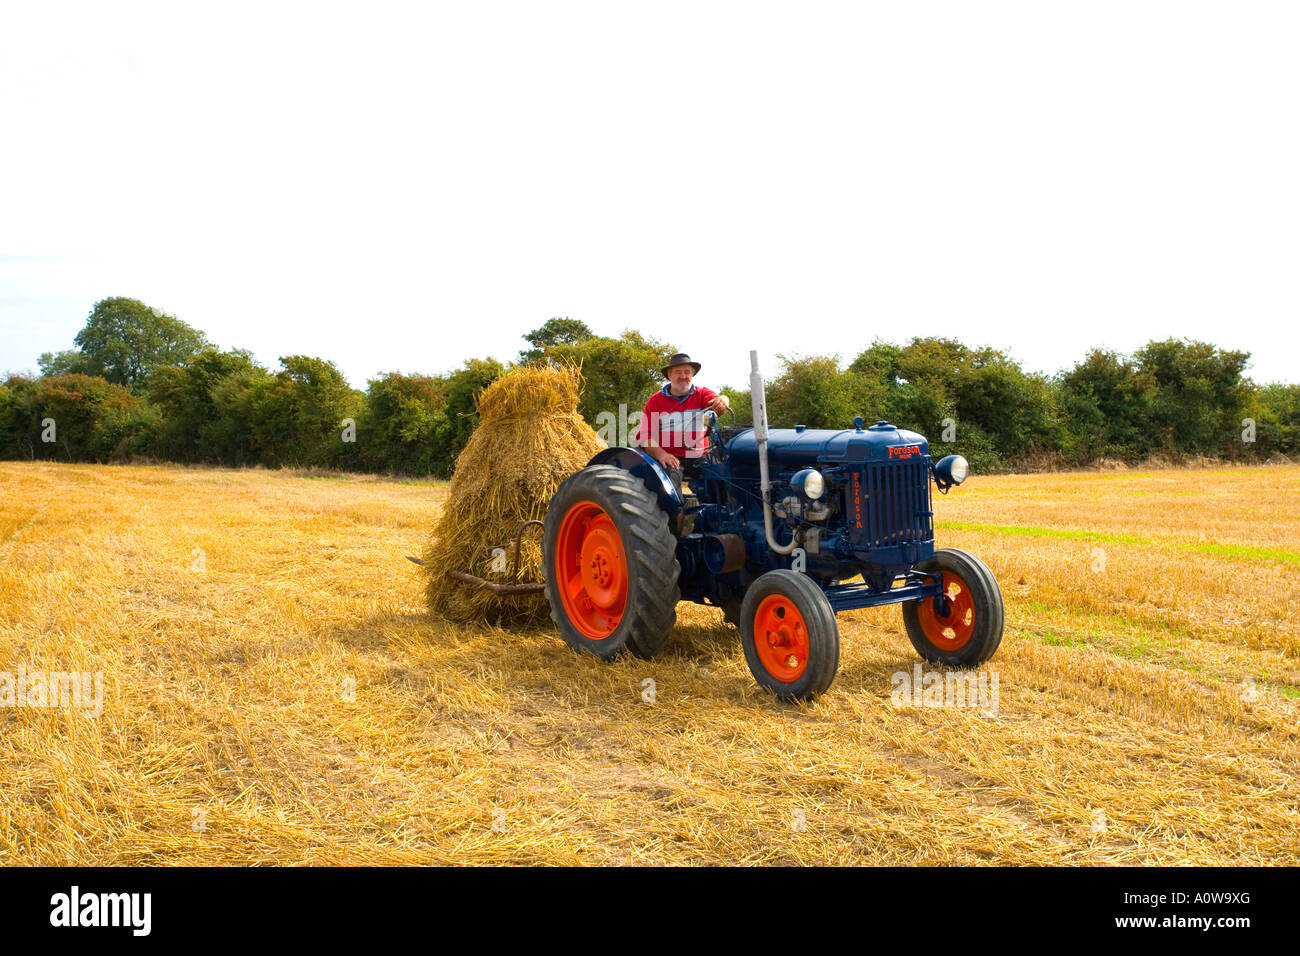 farmer saving the hay with his tractor in the field - Stock Image